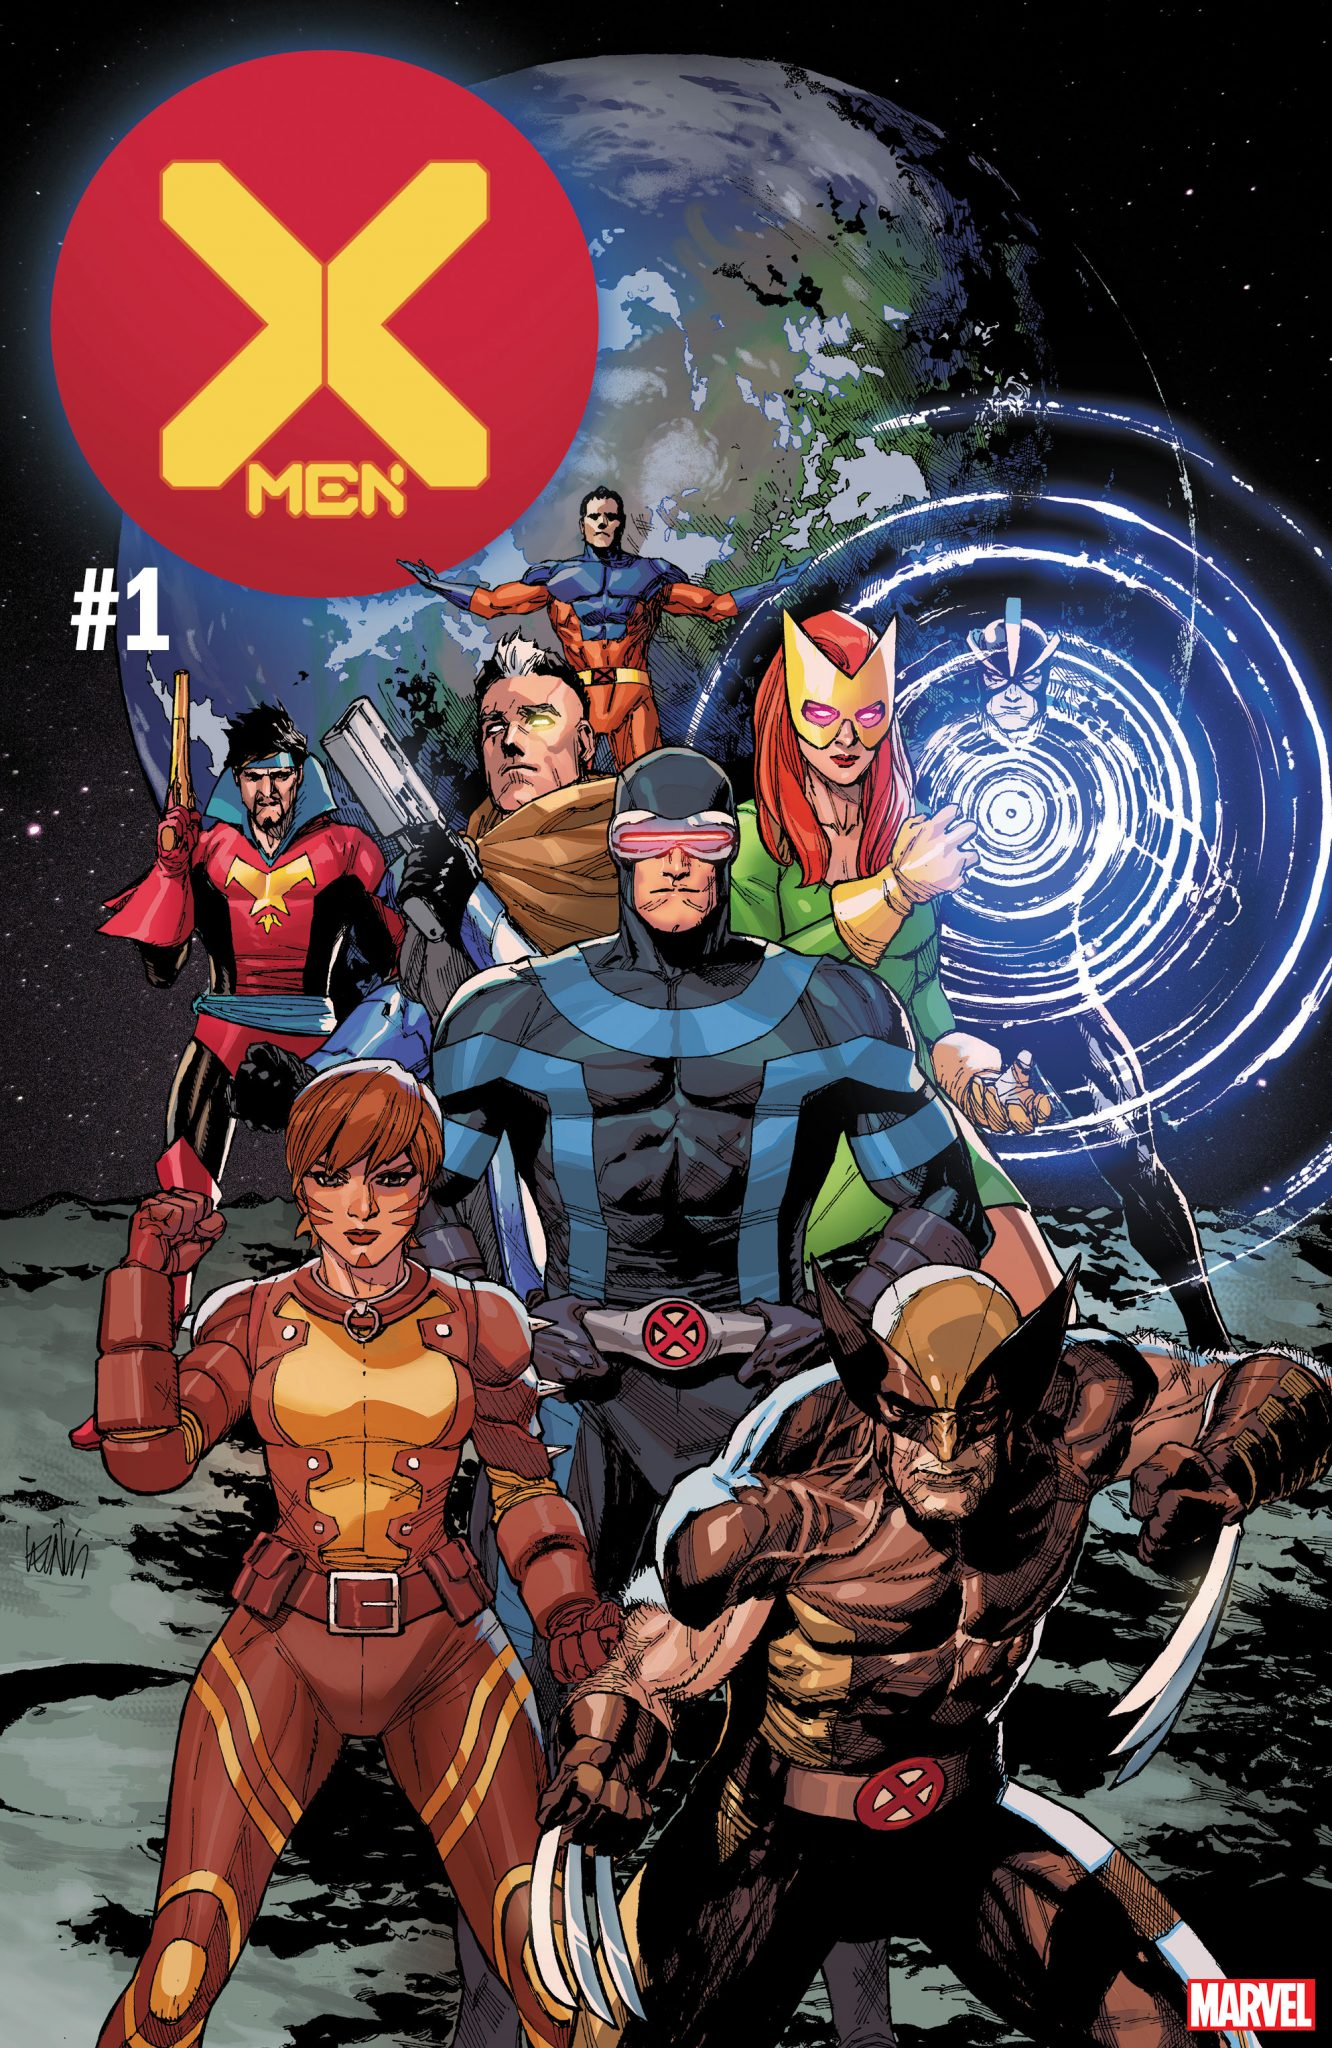 Marvel Comics na SDCC 2019 - X-Men #1 - Blog Farofeiros